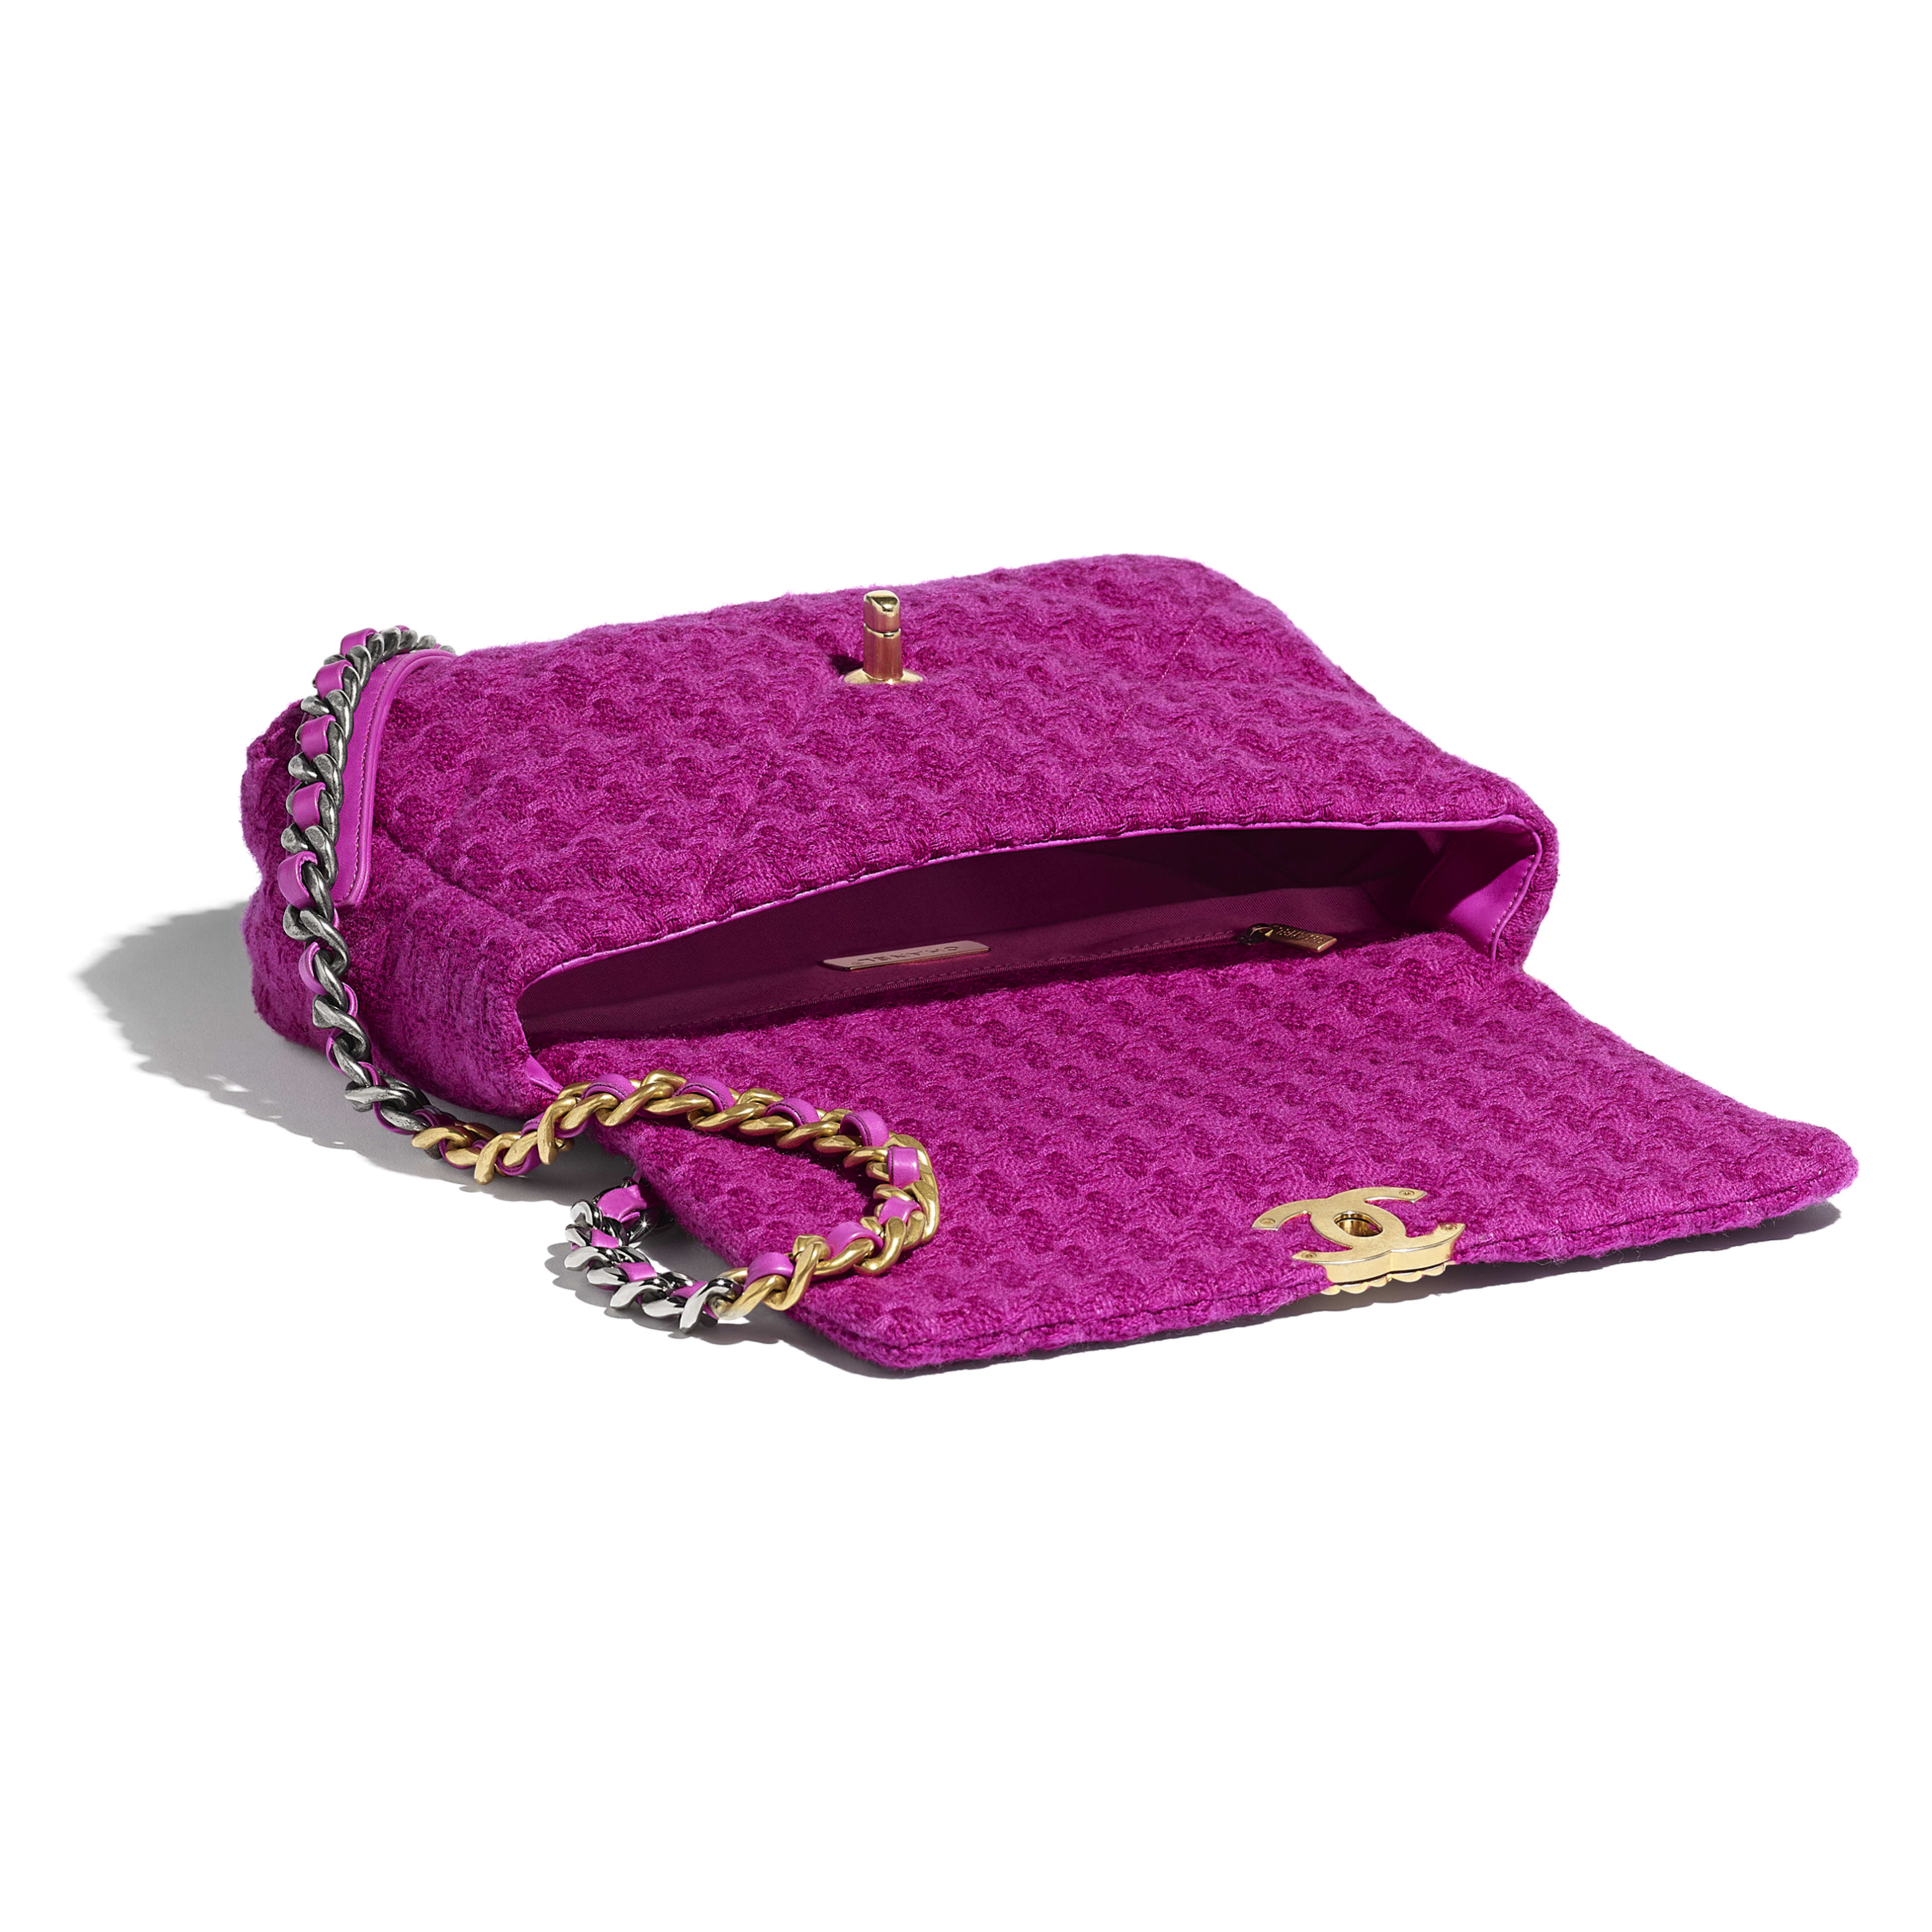 CHANEL 19 Large Flap Bag - Fuchsia - Wool Tweed, Gold-Tone, Silver-Tone & Ruthenium-Finish Metal - Other view - see full sized version